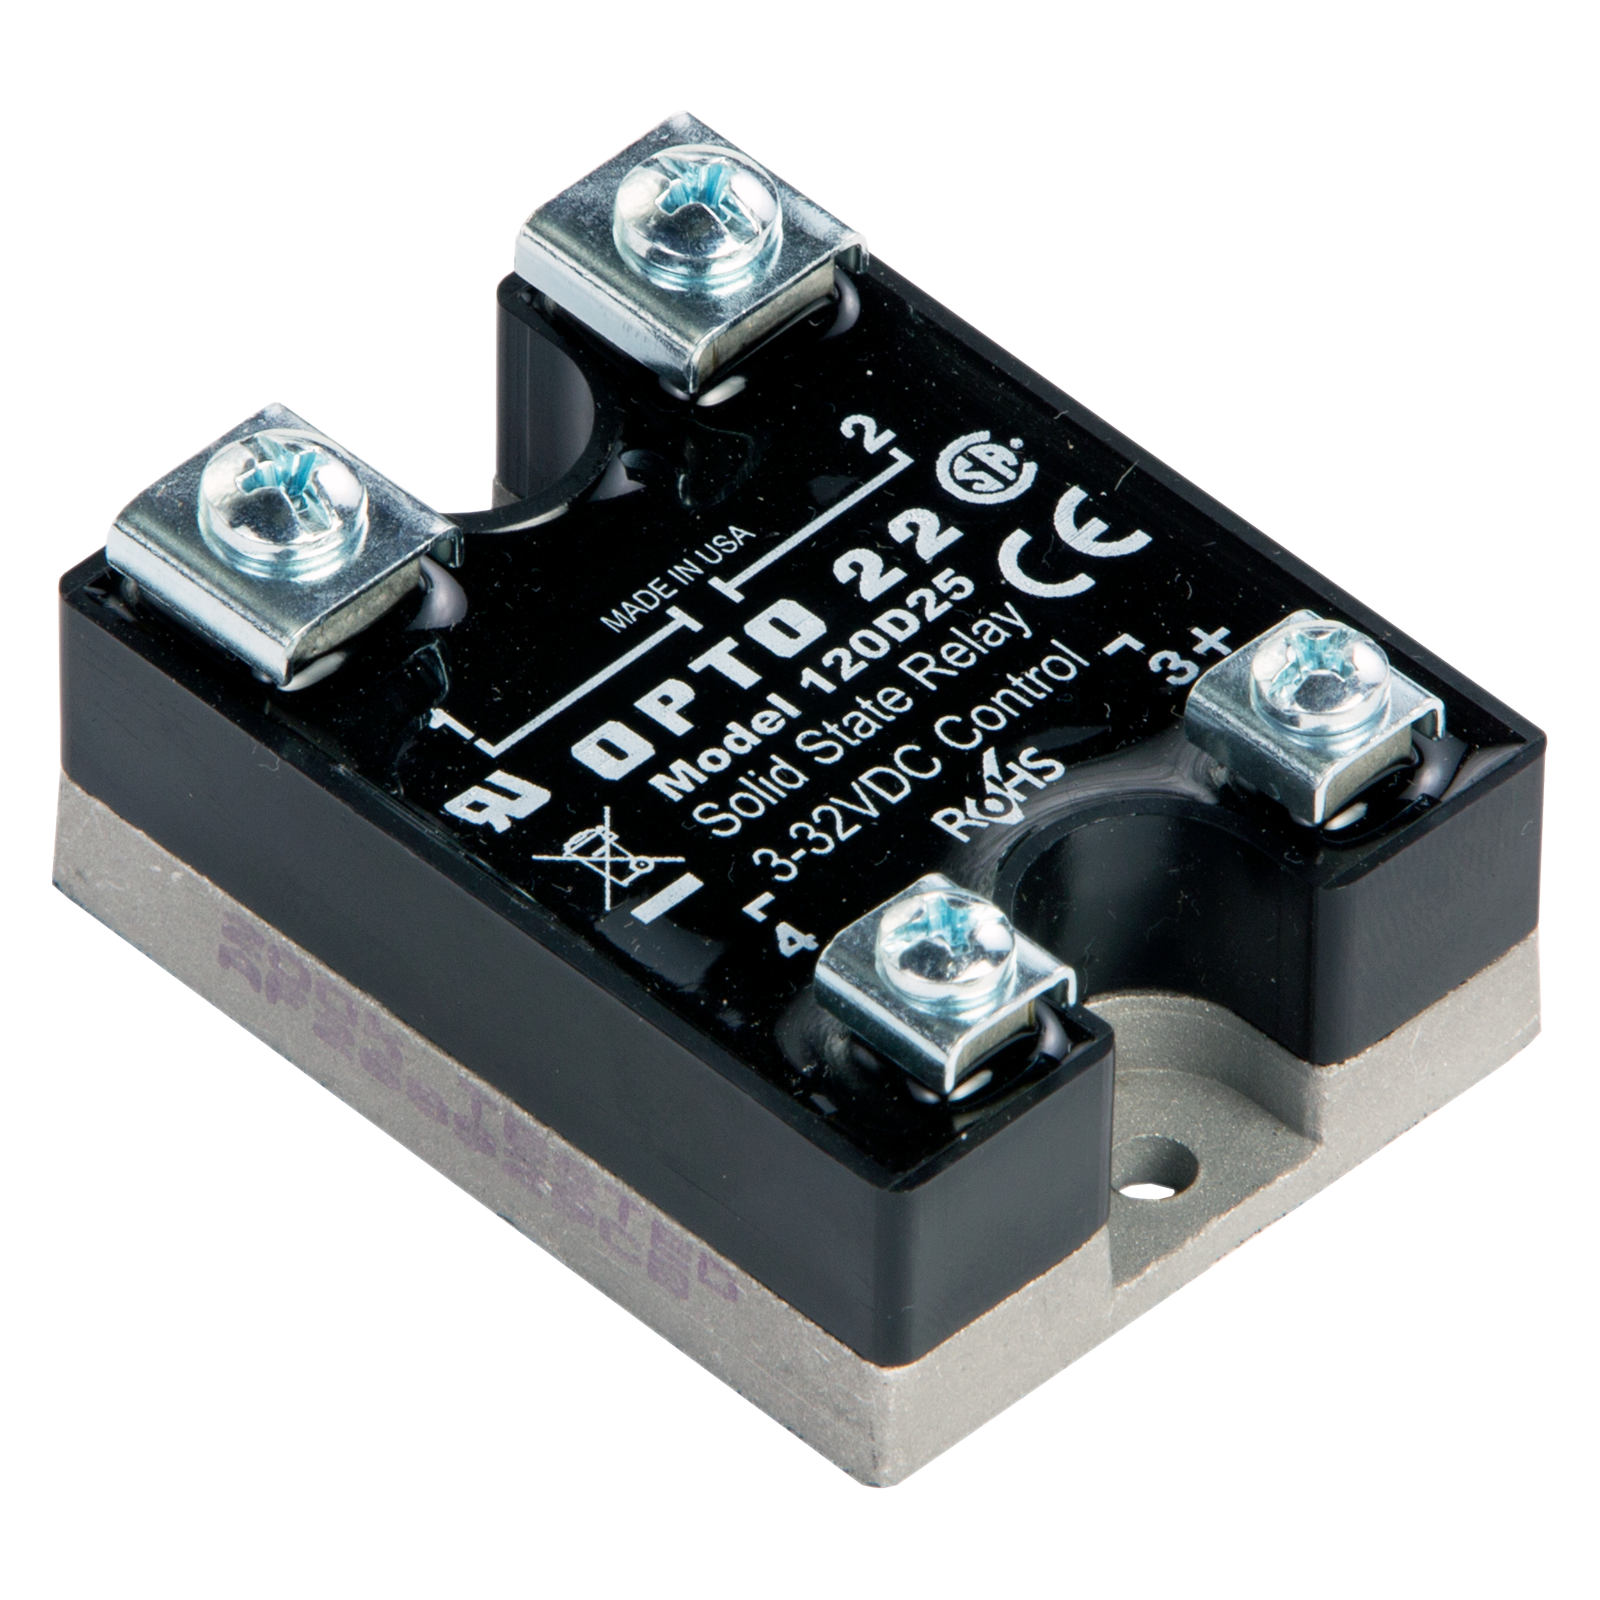 opto22 120d25 120 vac, 25 amp, dc control solid state relay (ssr)hover over image to zoom in